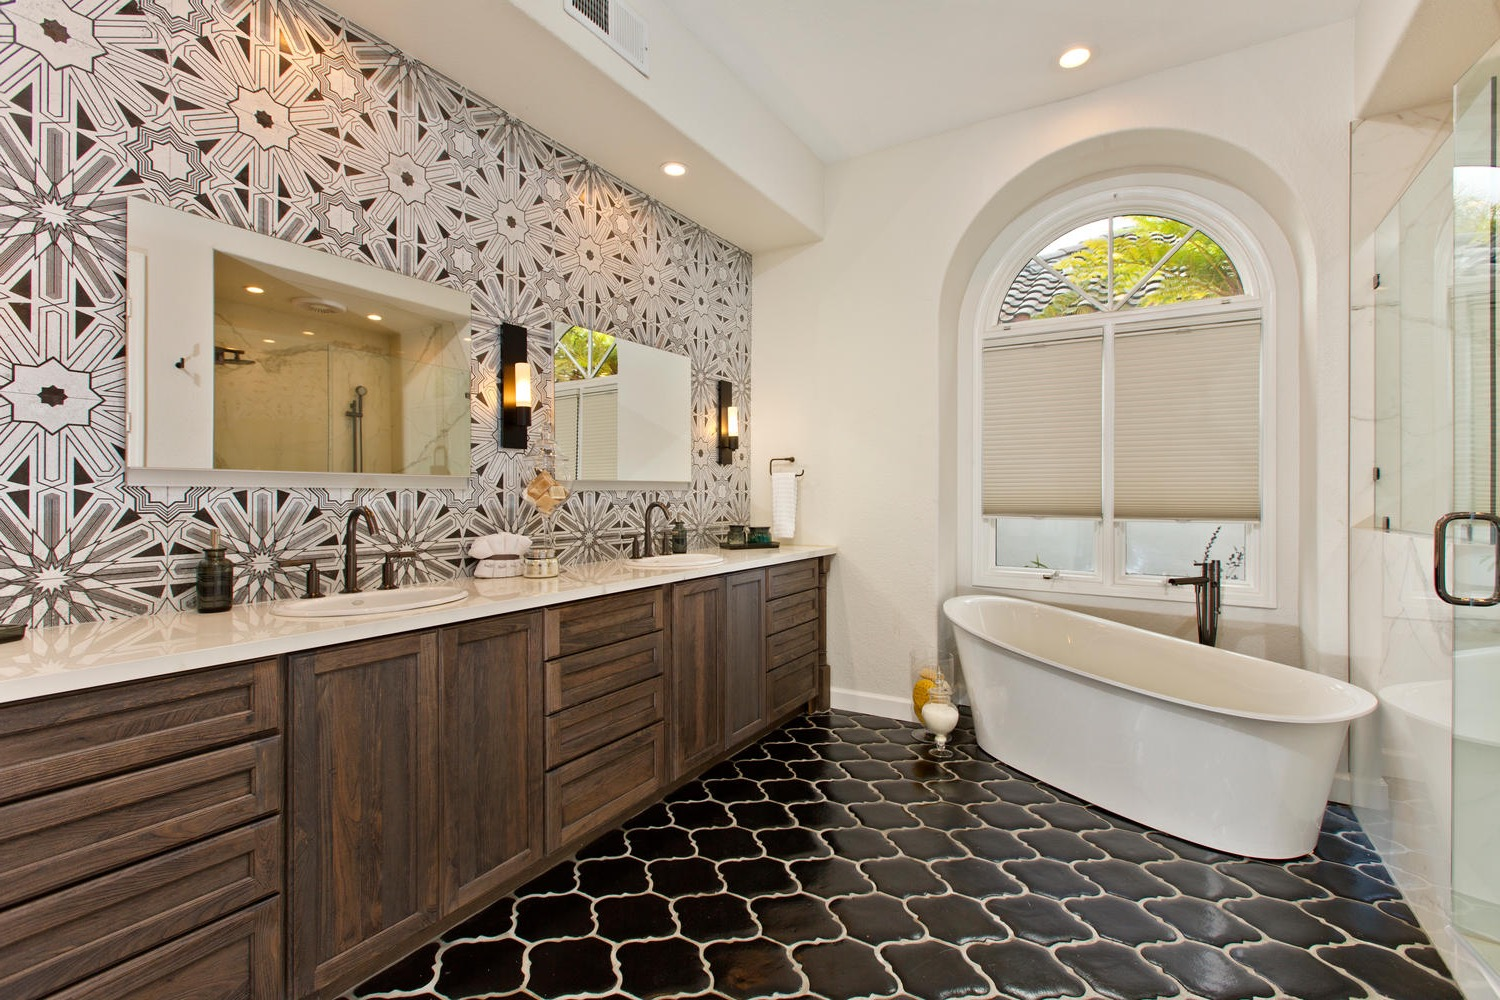 Contemporary Trendy Bathroom In Black And White Color (Image 7 of 14)